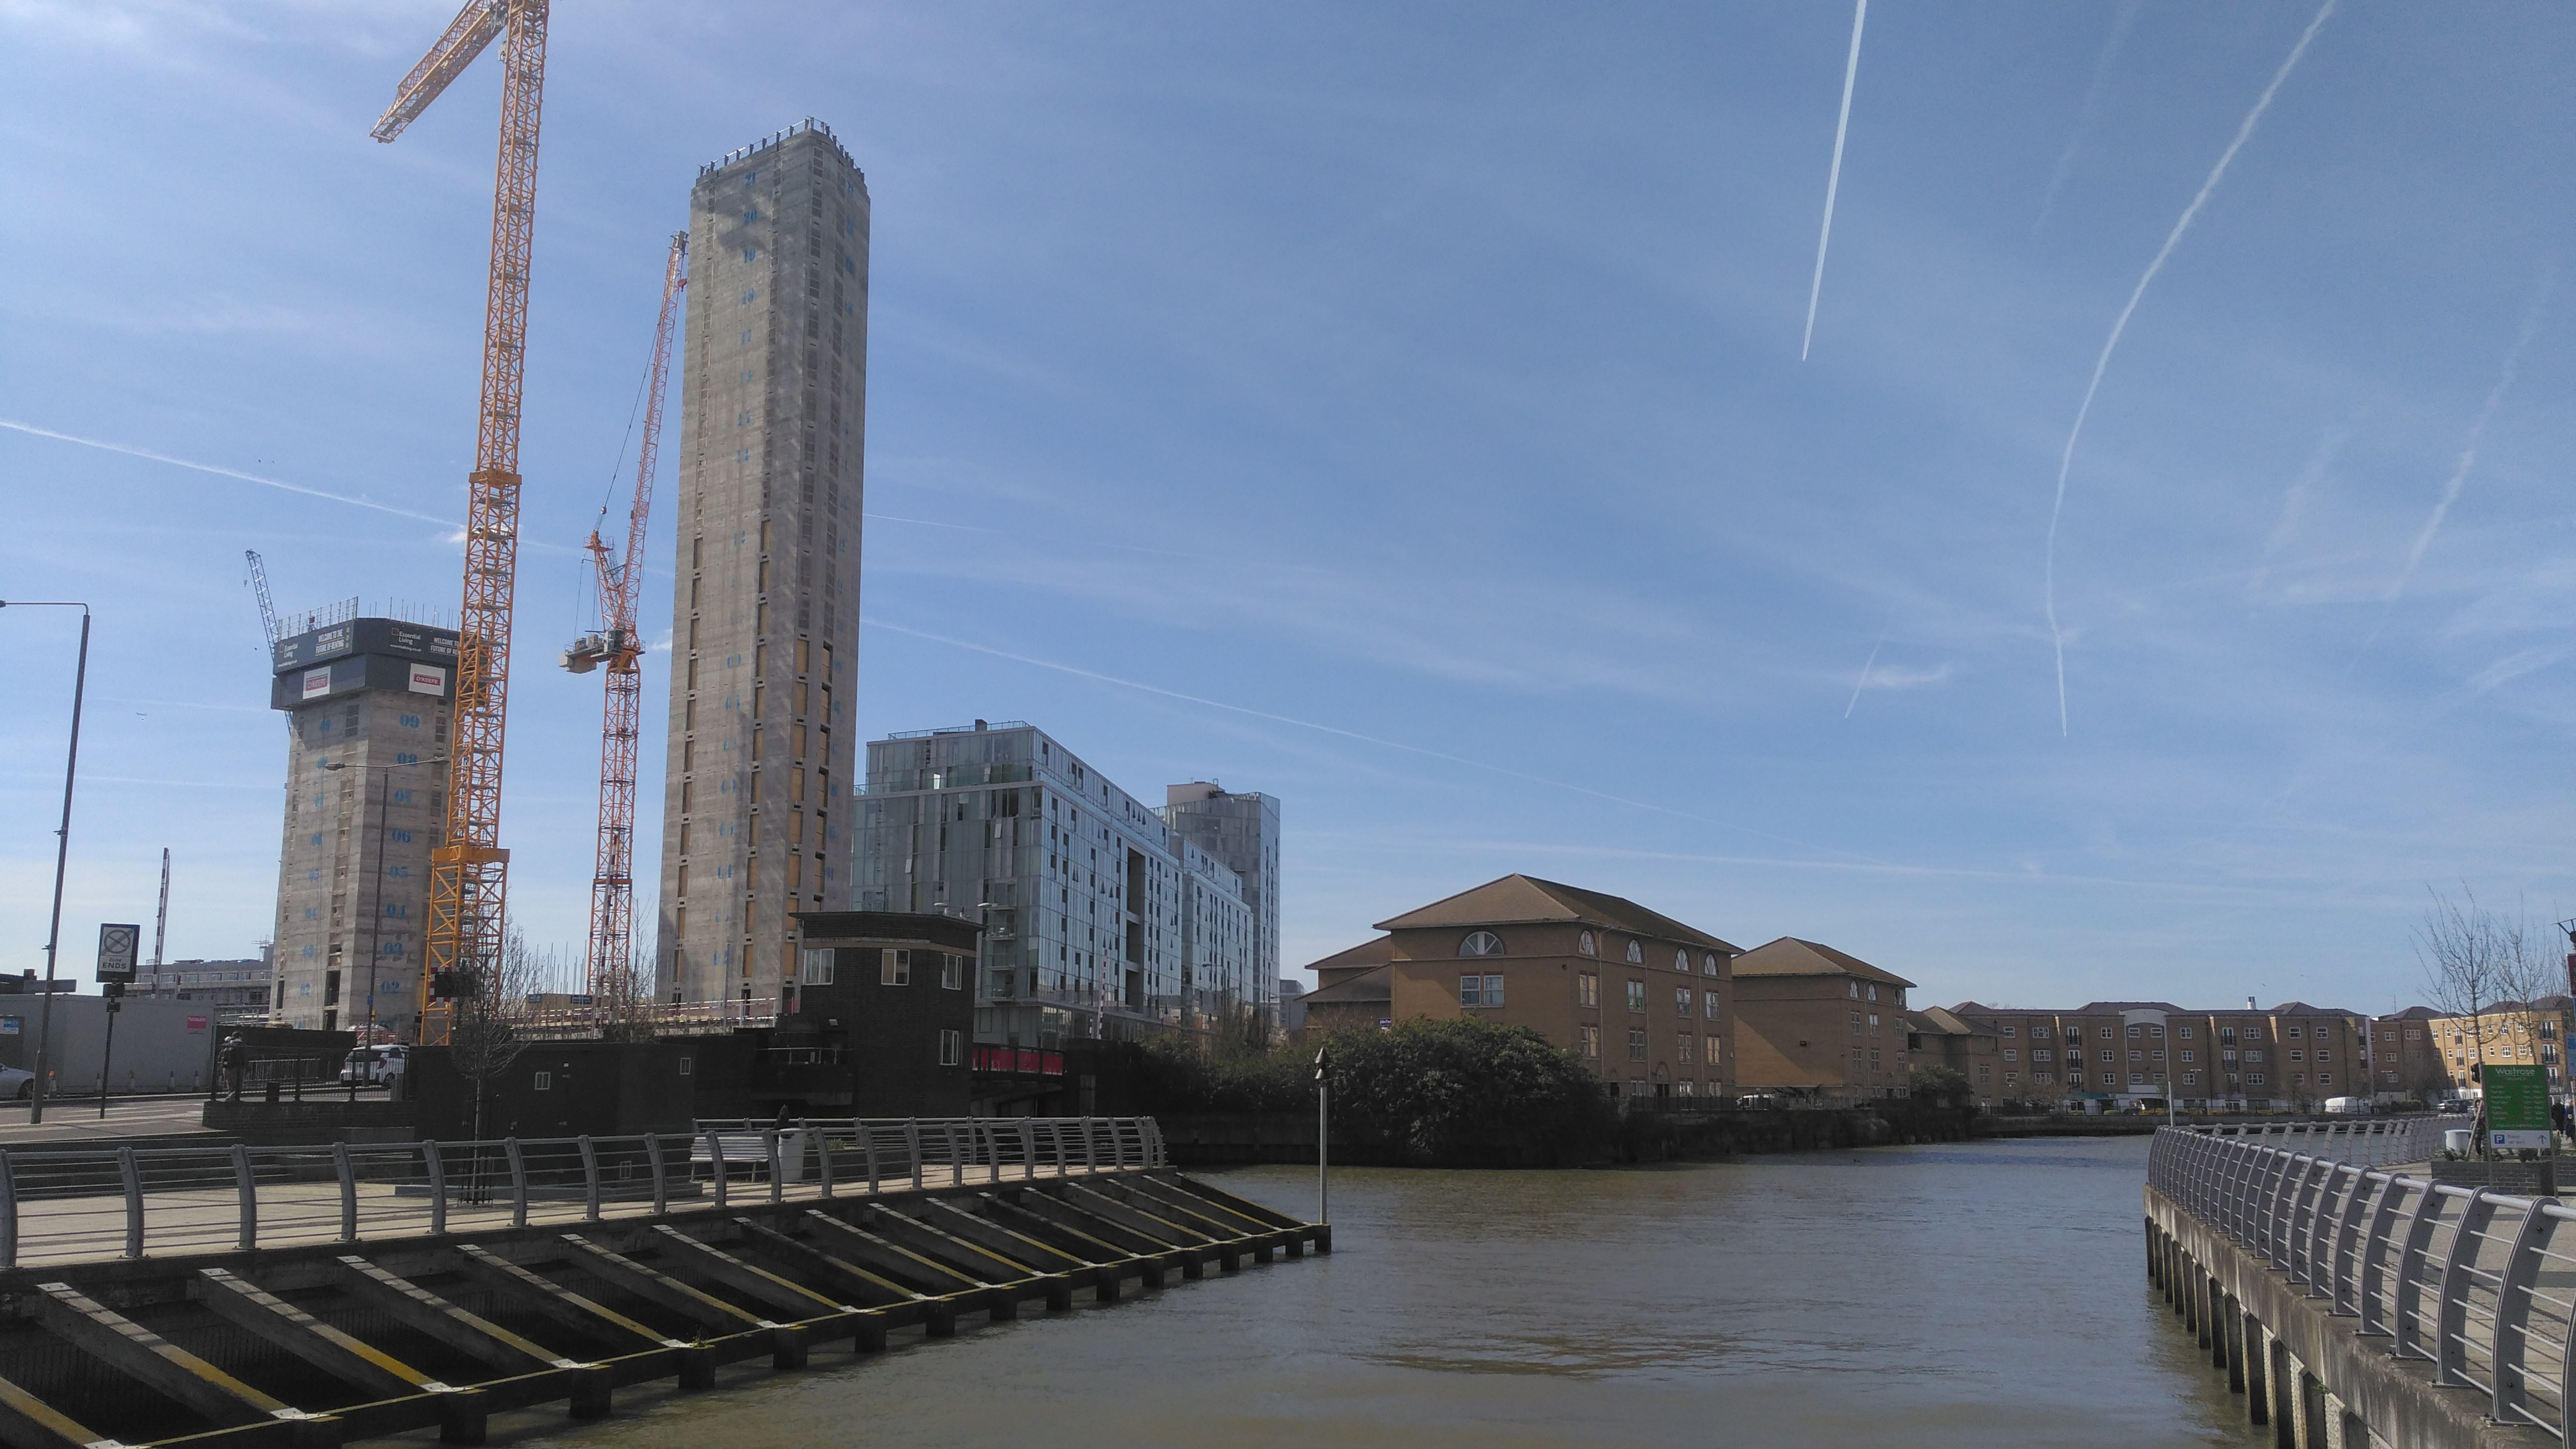 Deptford Creek tower